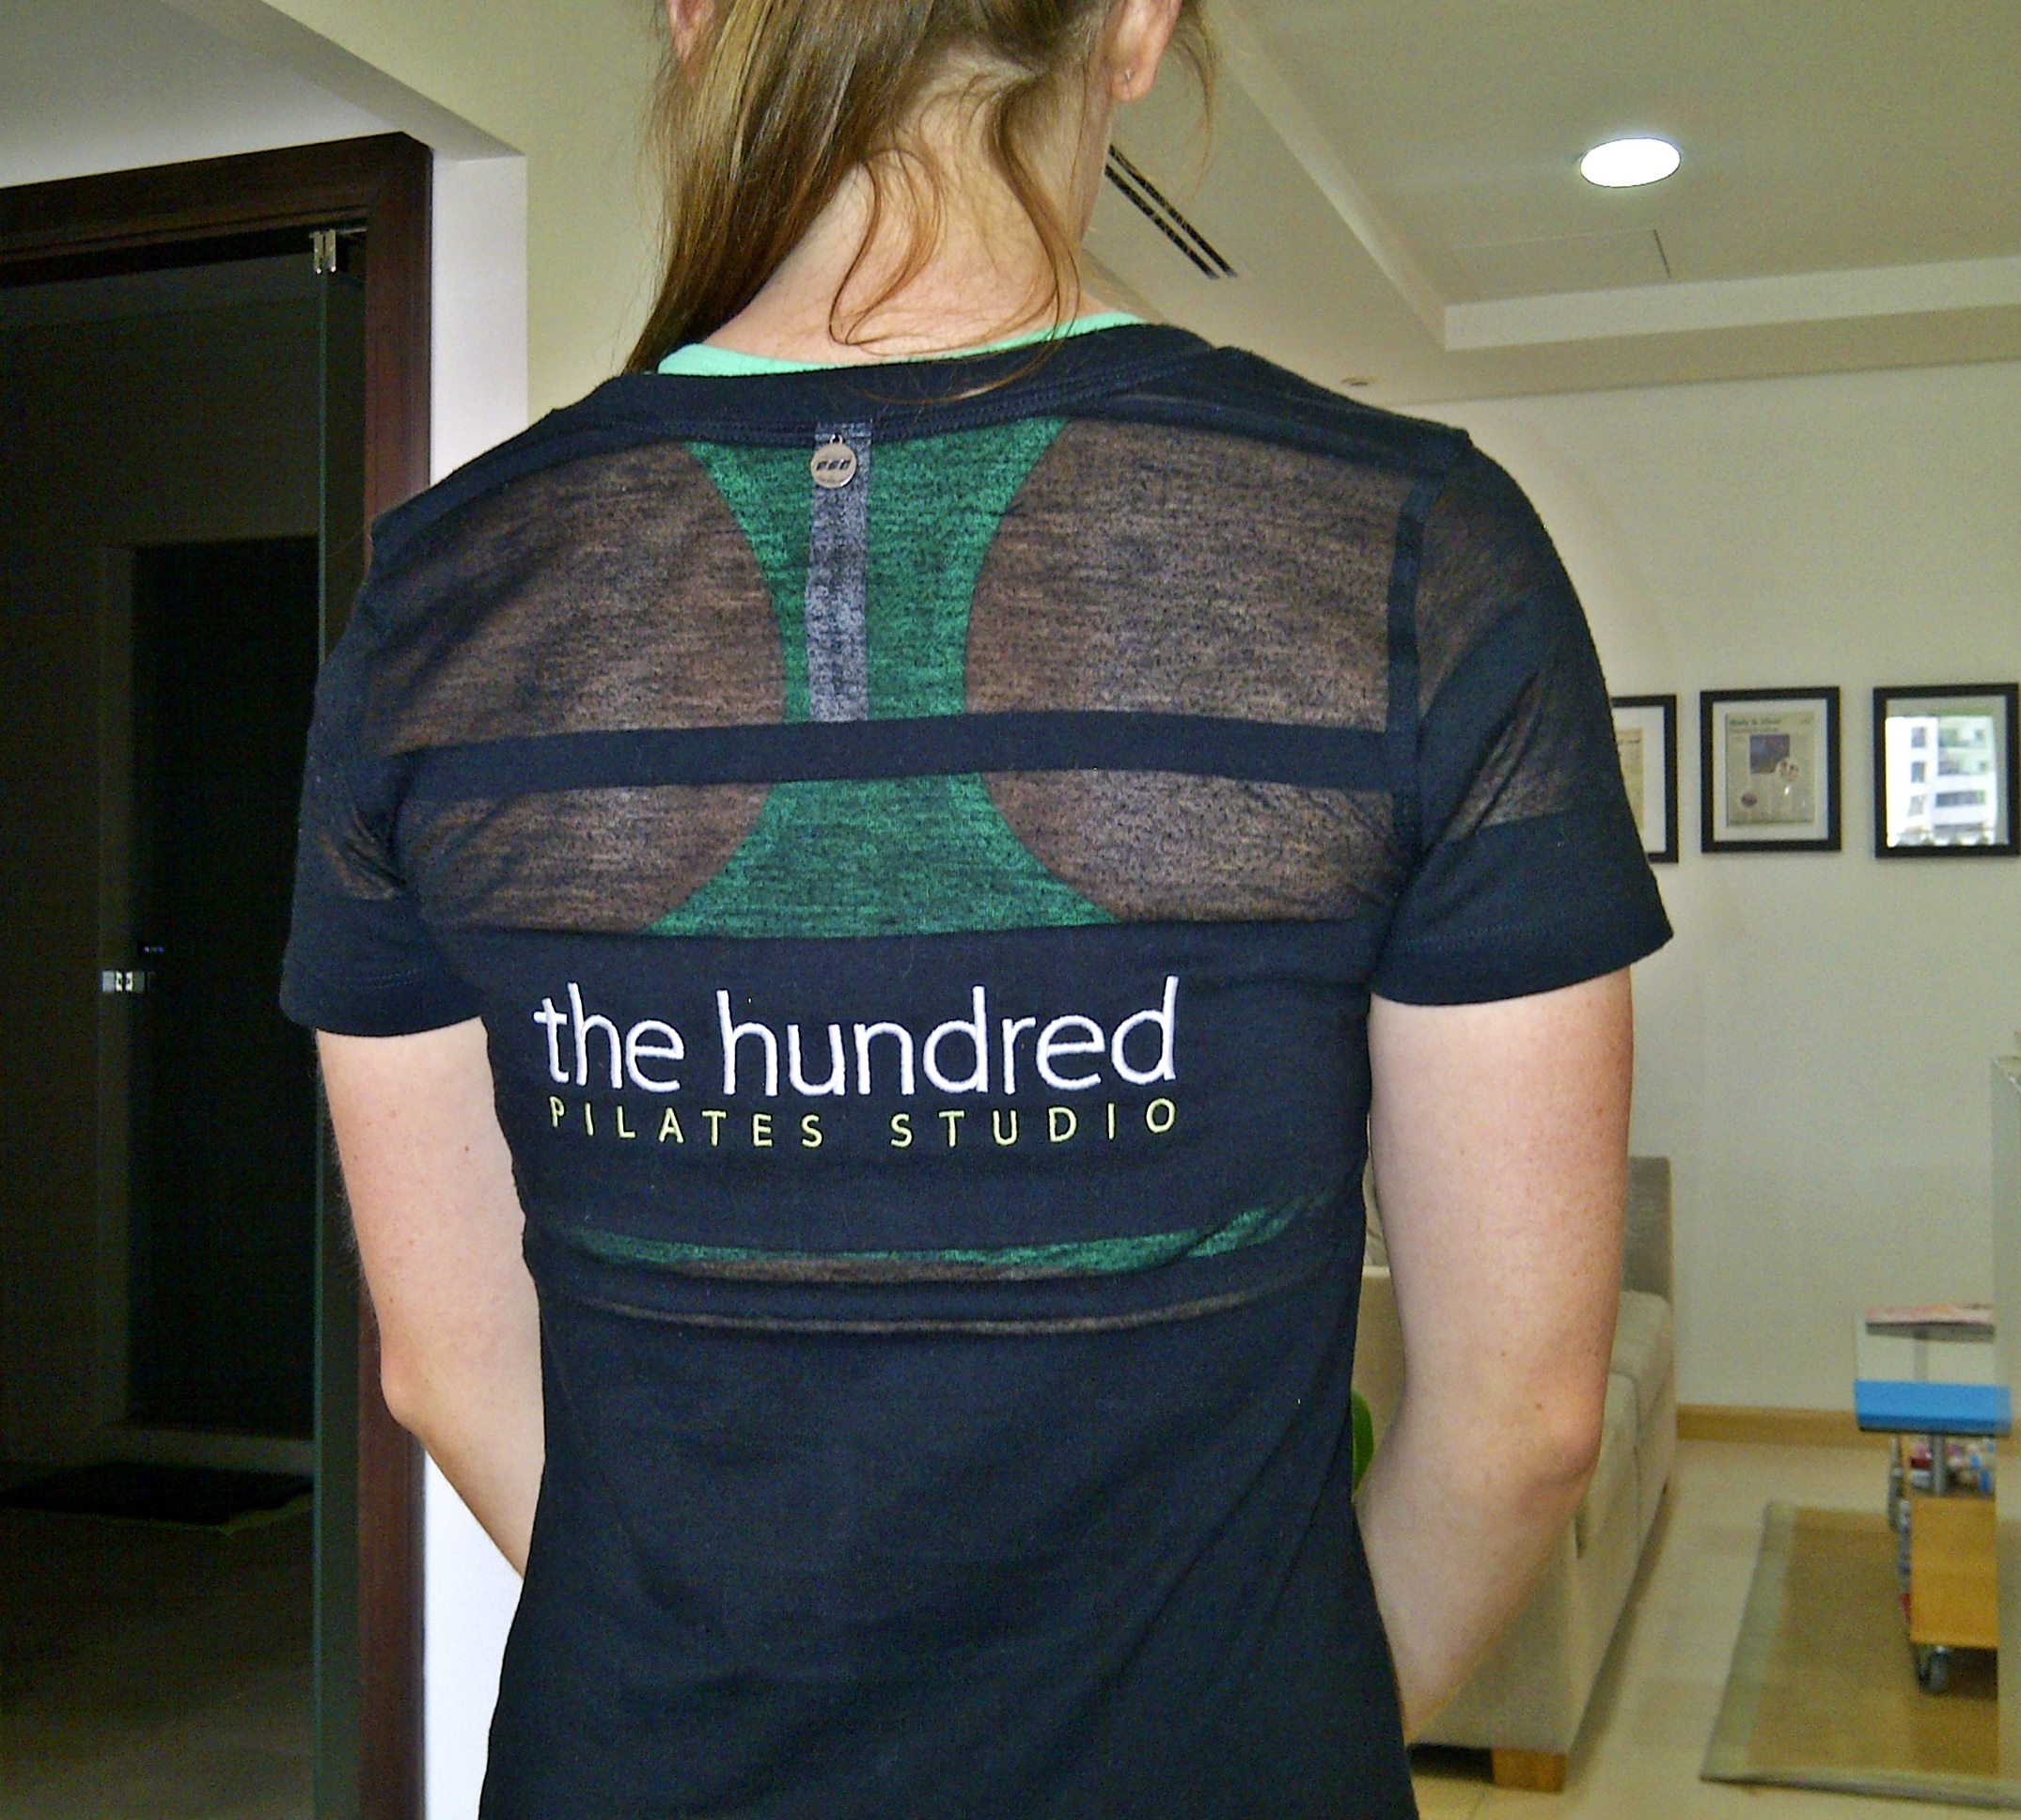 The Hundred Pilates Dubai receive a new revamped uniform look thanks to Lorna Jane's beautiful designs!